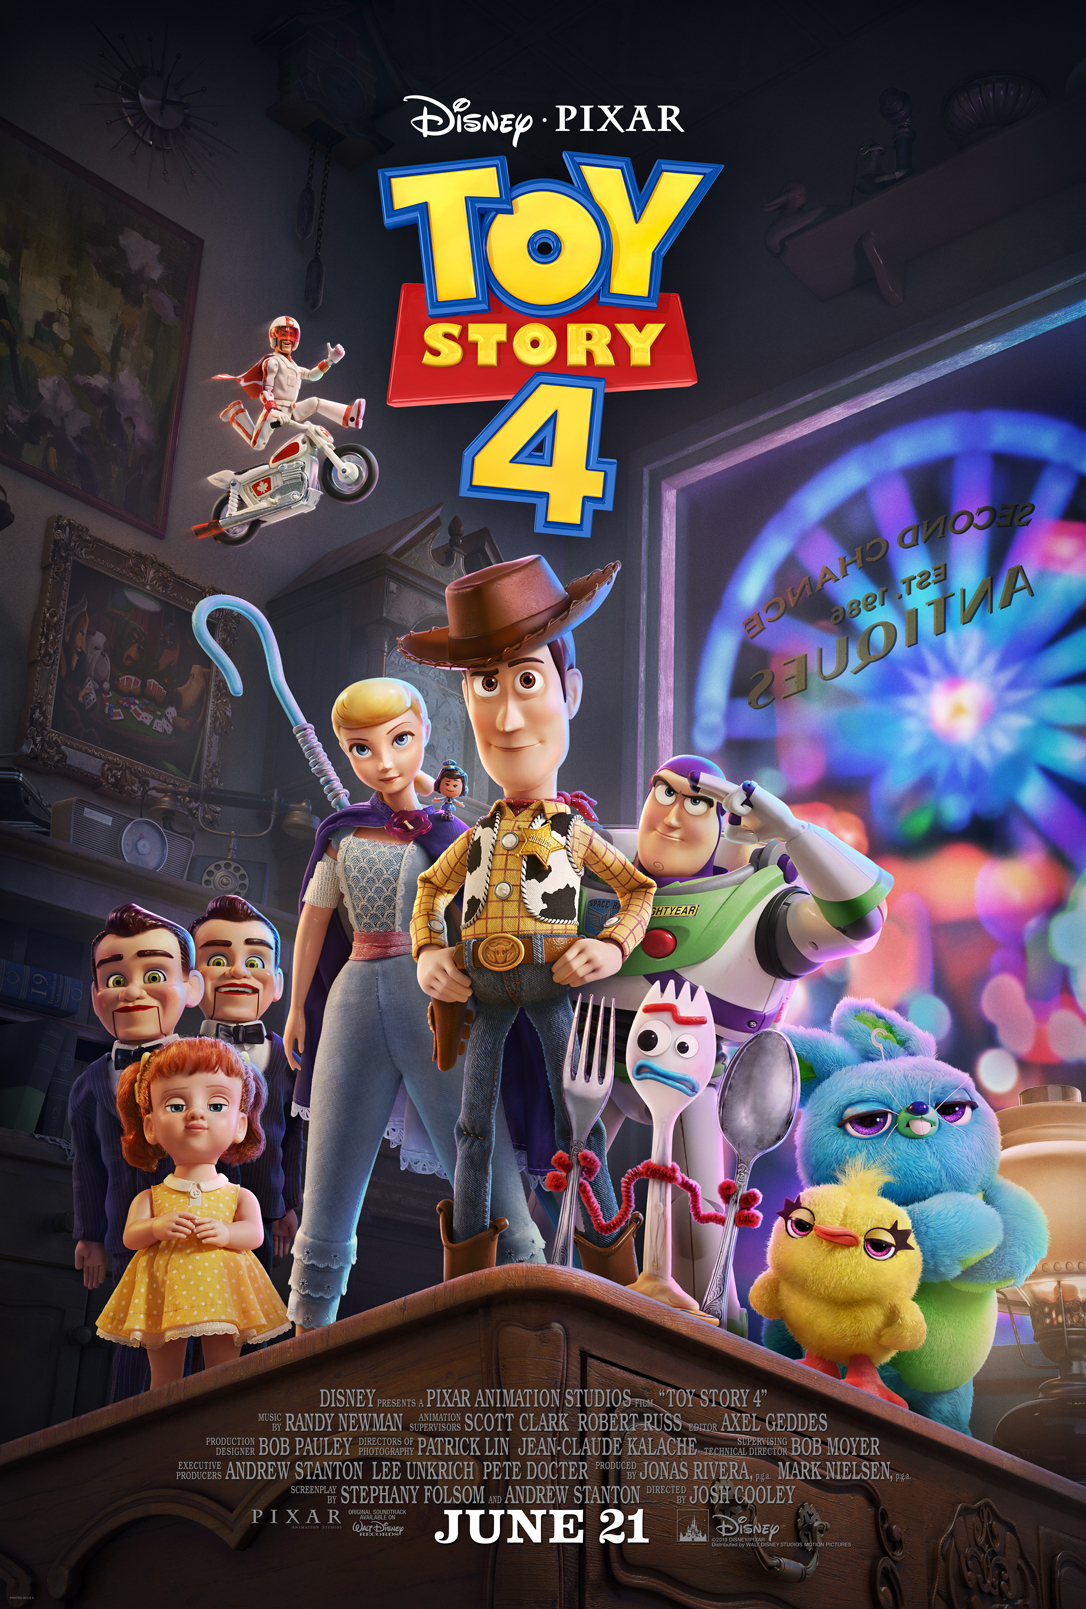 Toy Story 4 - June 20th, 2019